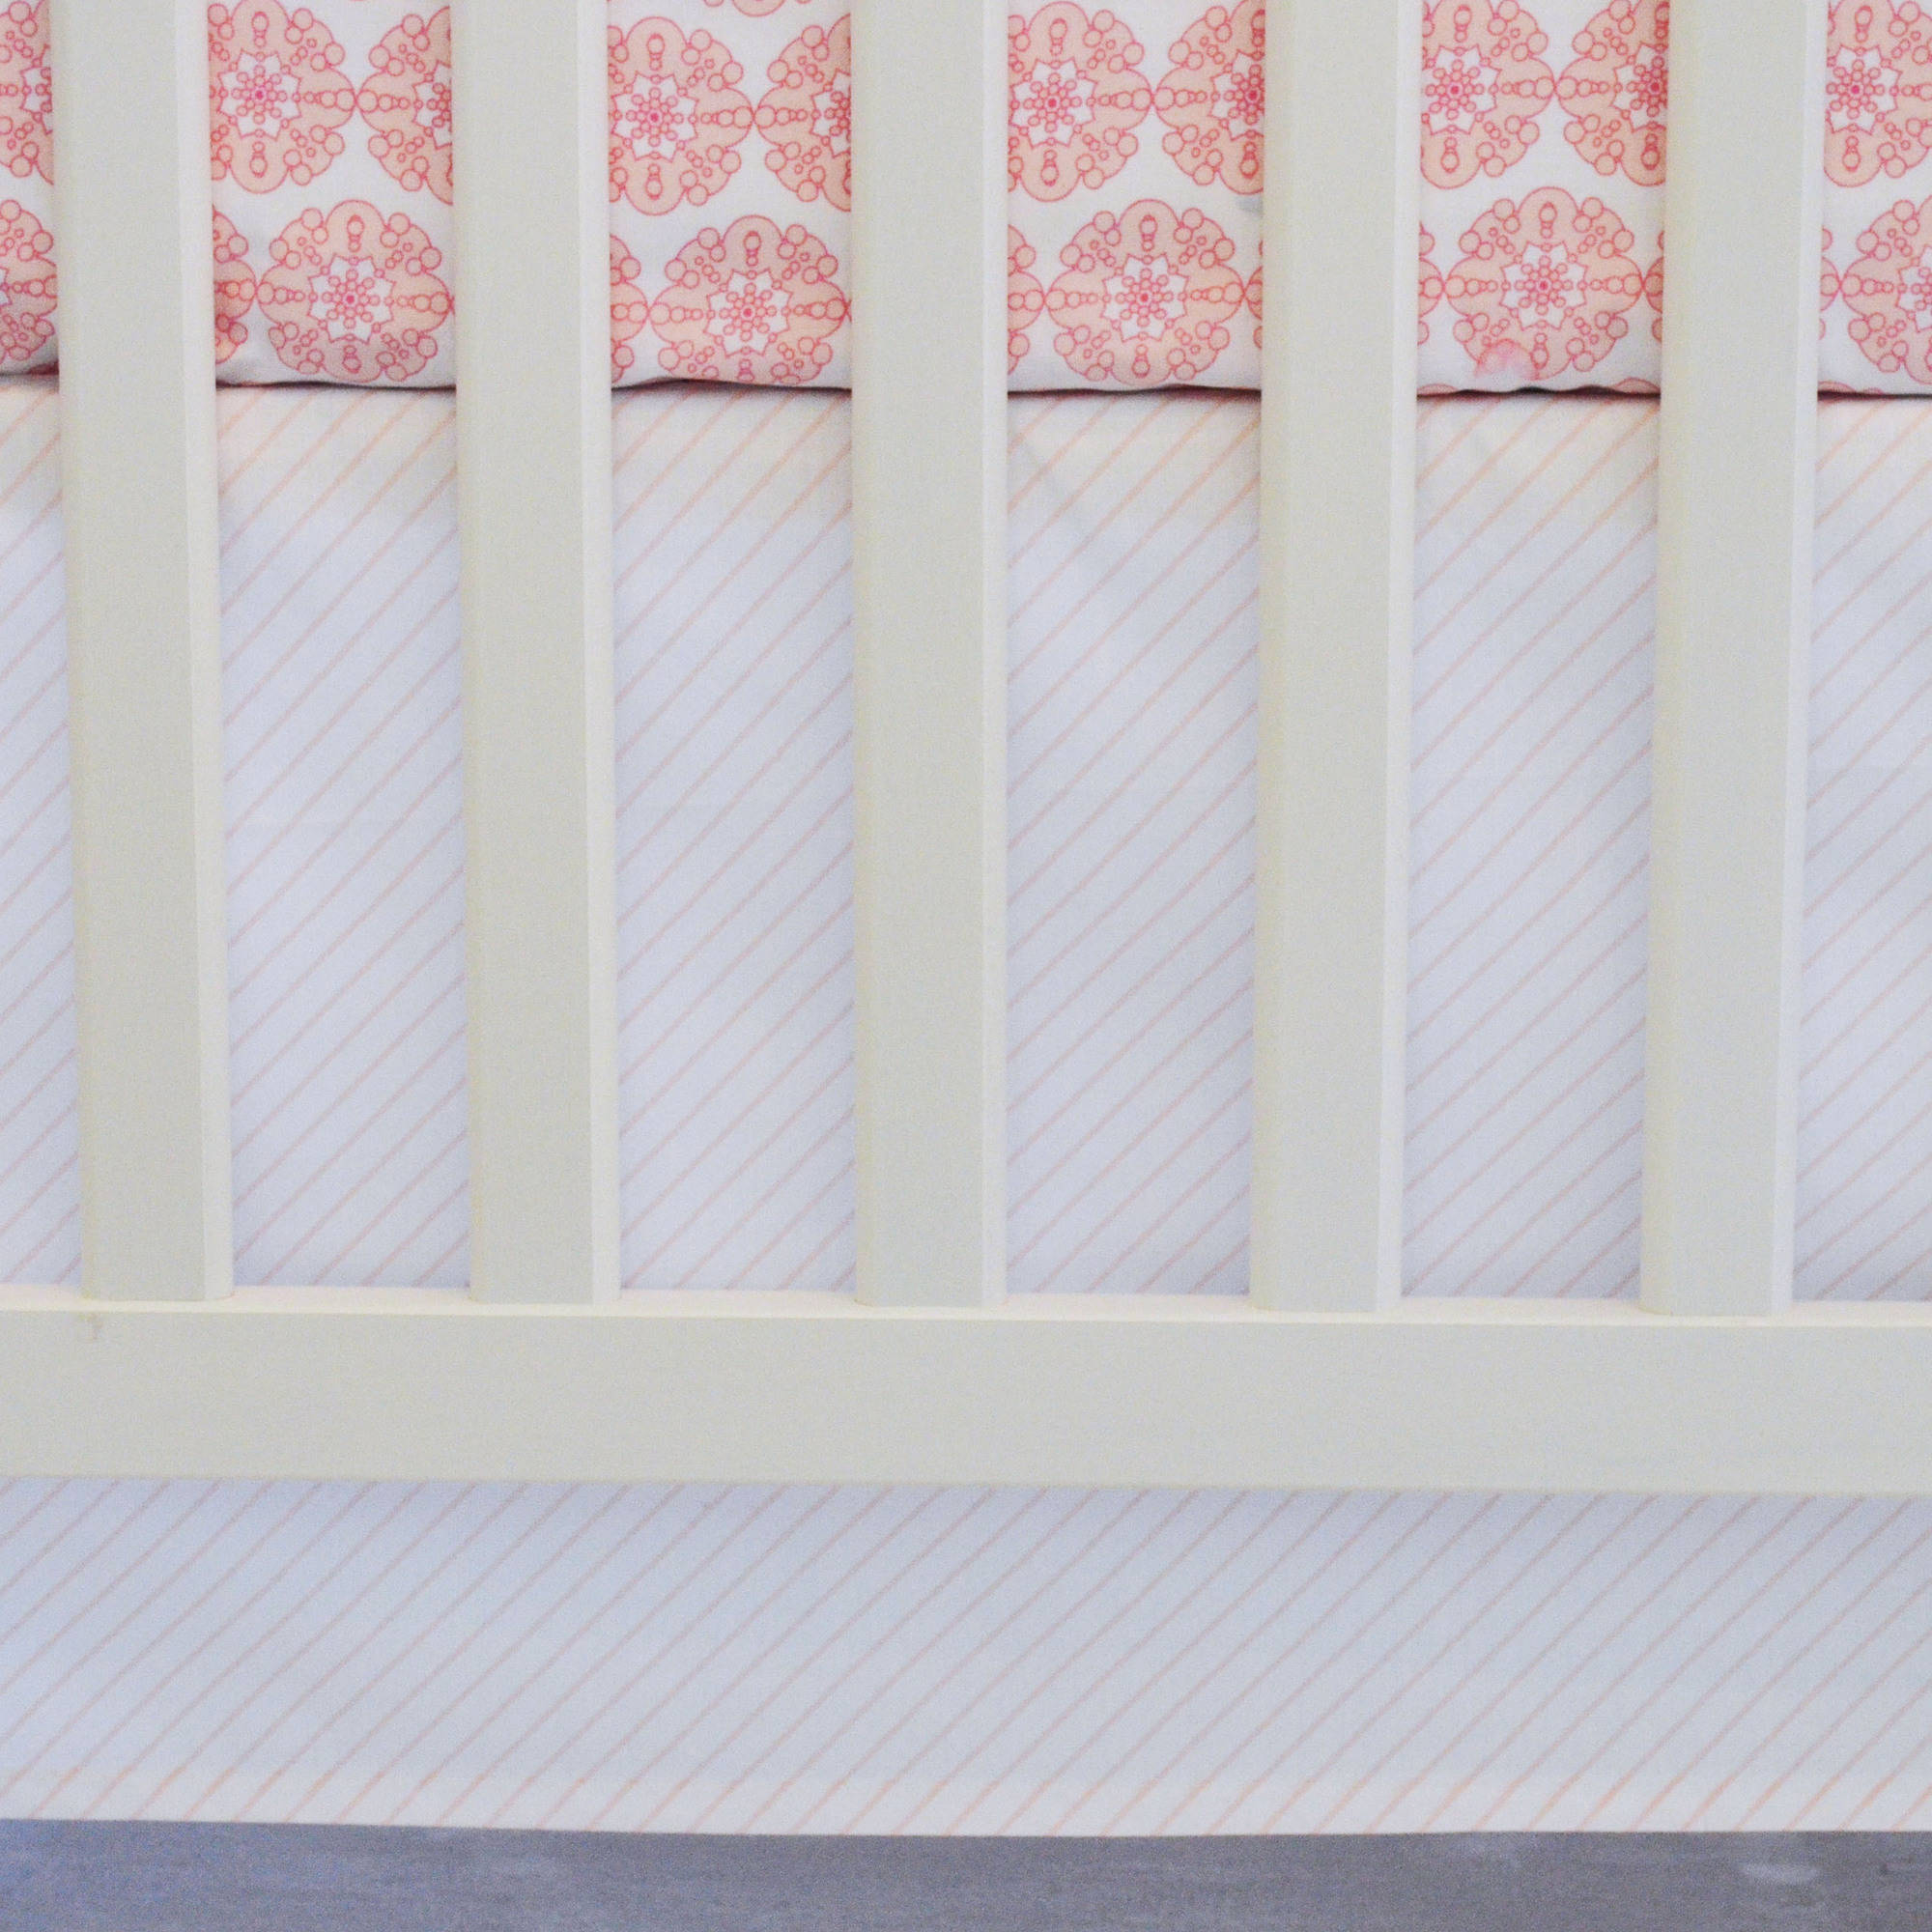 Oliver B Striped Crib Skirt, Pink and White